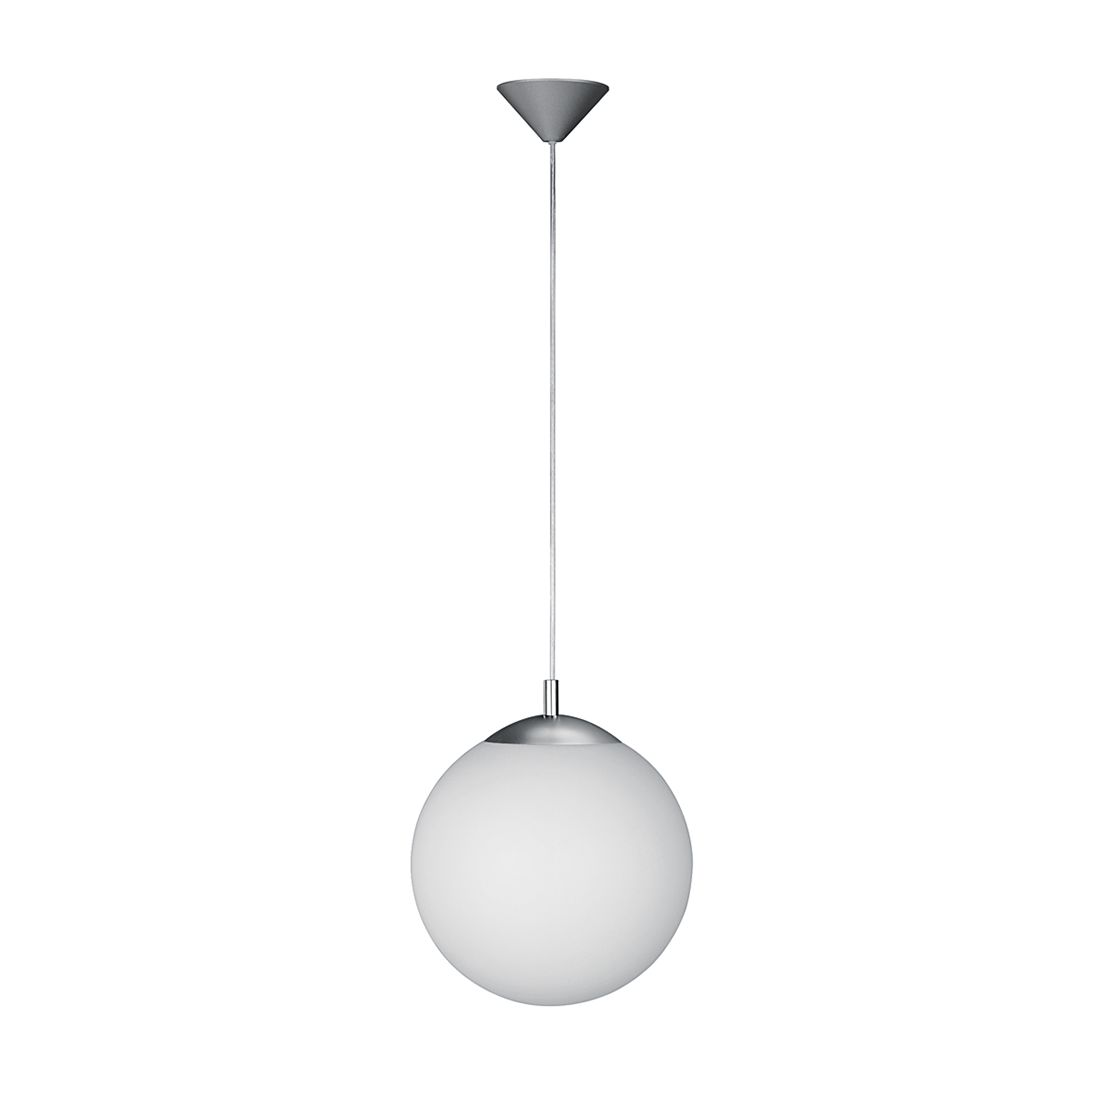 energie  A++, Hanglamp POINT - metaal/glas 1 lichtbron, Wofi